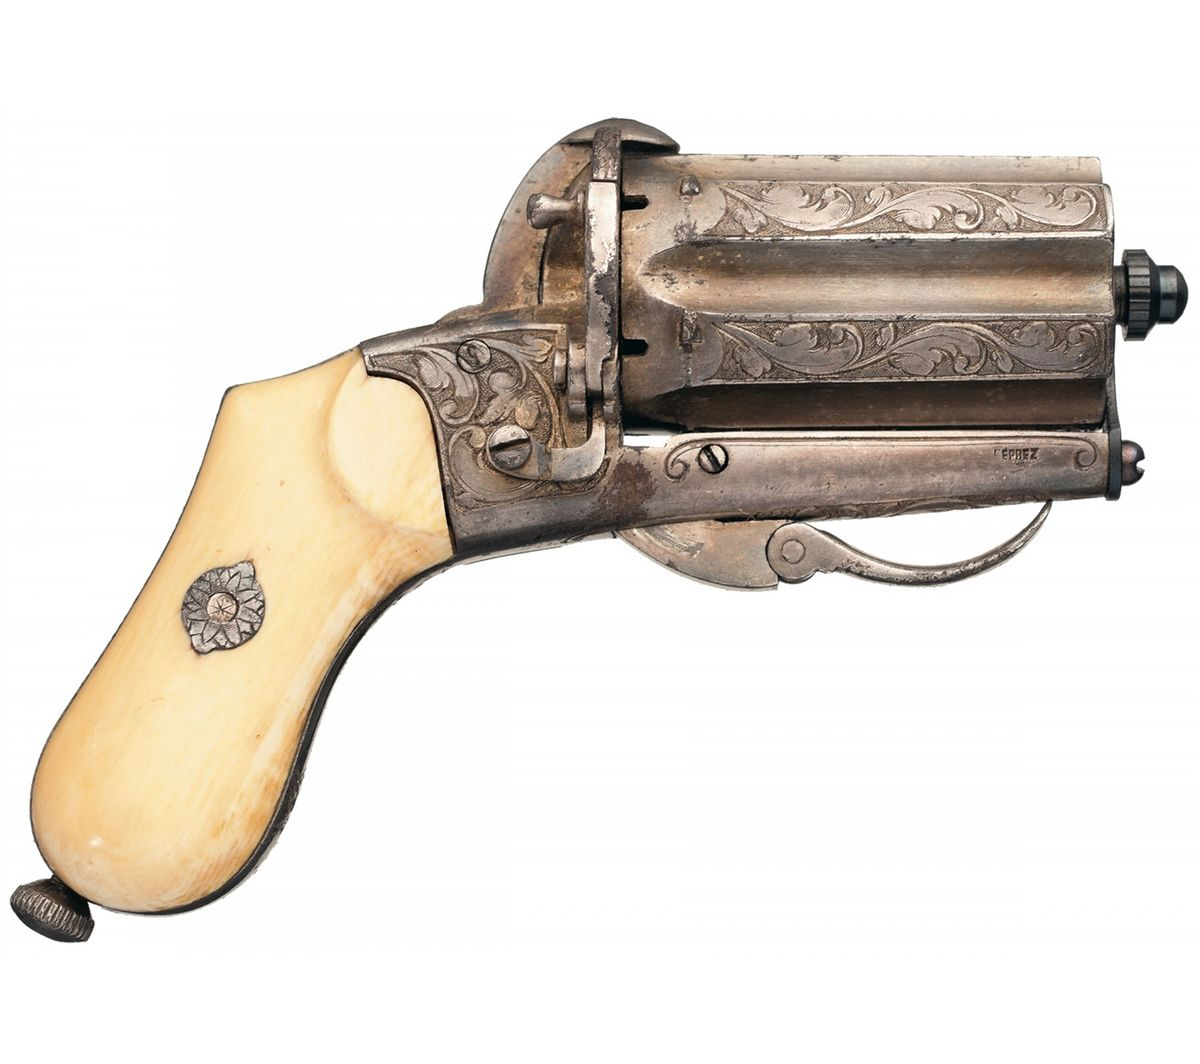 Engraved european pinfire pepperbox with ivory grips